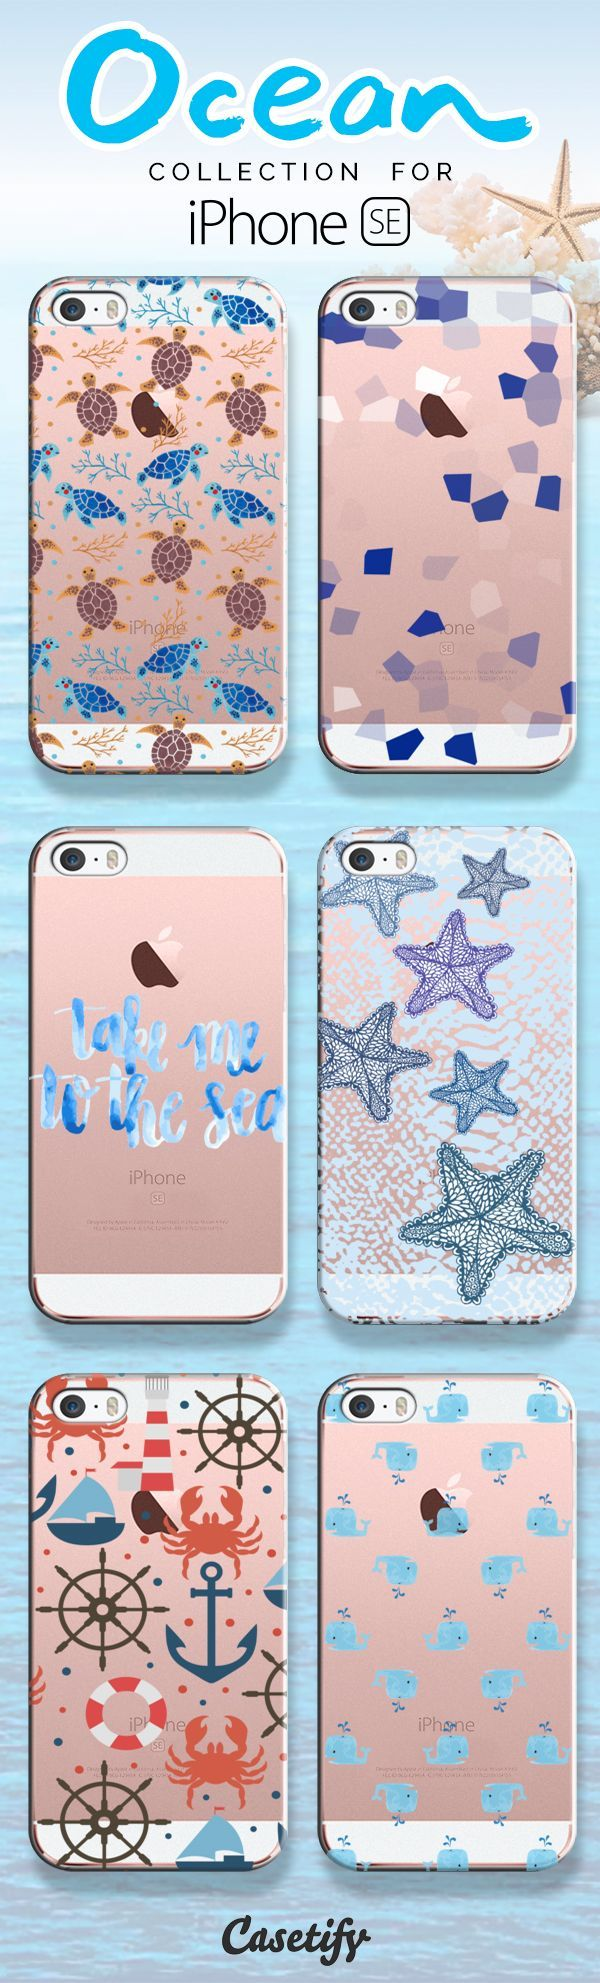 Do whatever floats to your board! Take a look at these ocean inspired cases on our site now! www.casetify.com/... | @Casetify